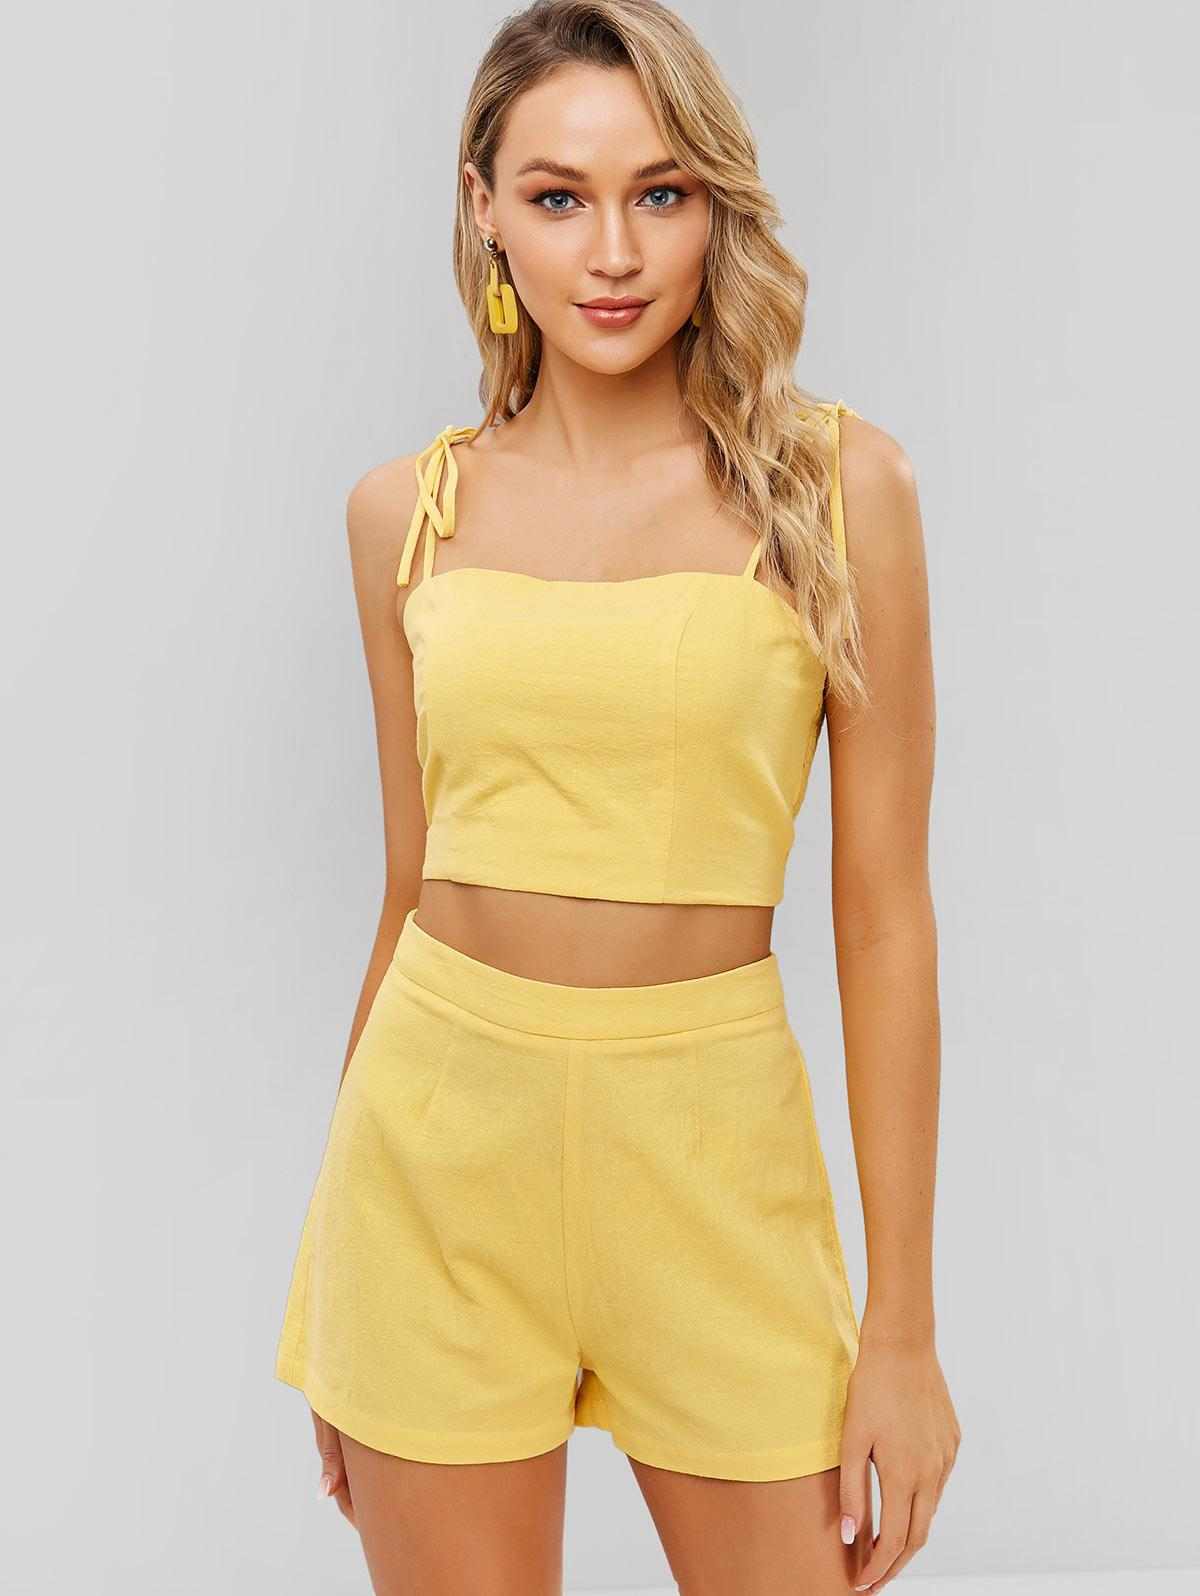 ZAFUL Tied Straps Smocked Cami Top And Shorts Set, Bright yellow